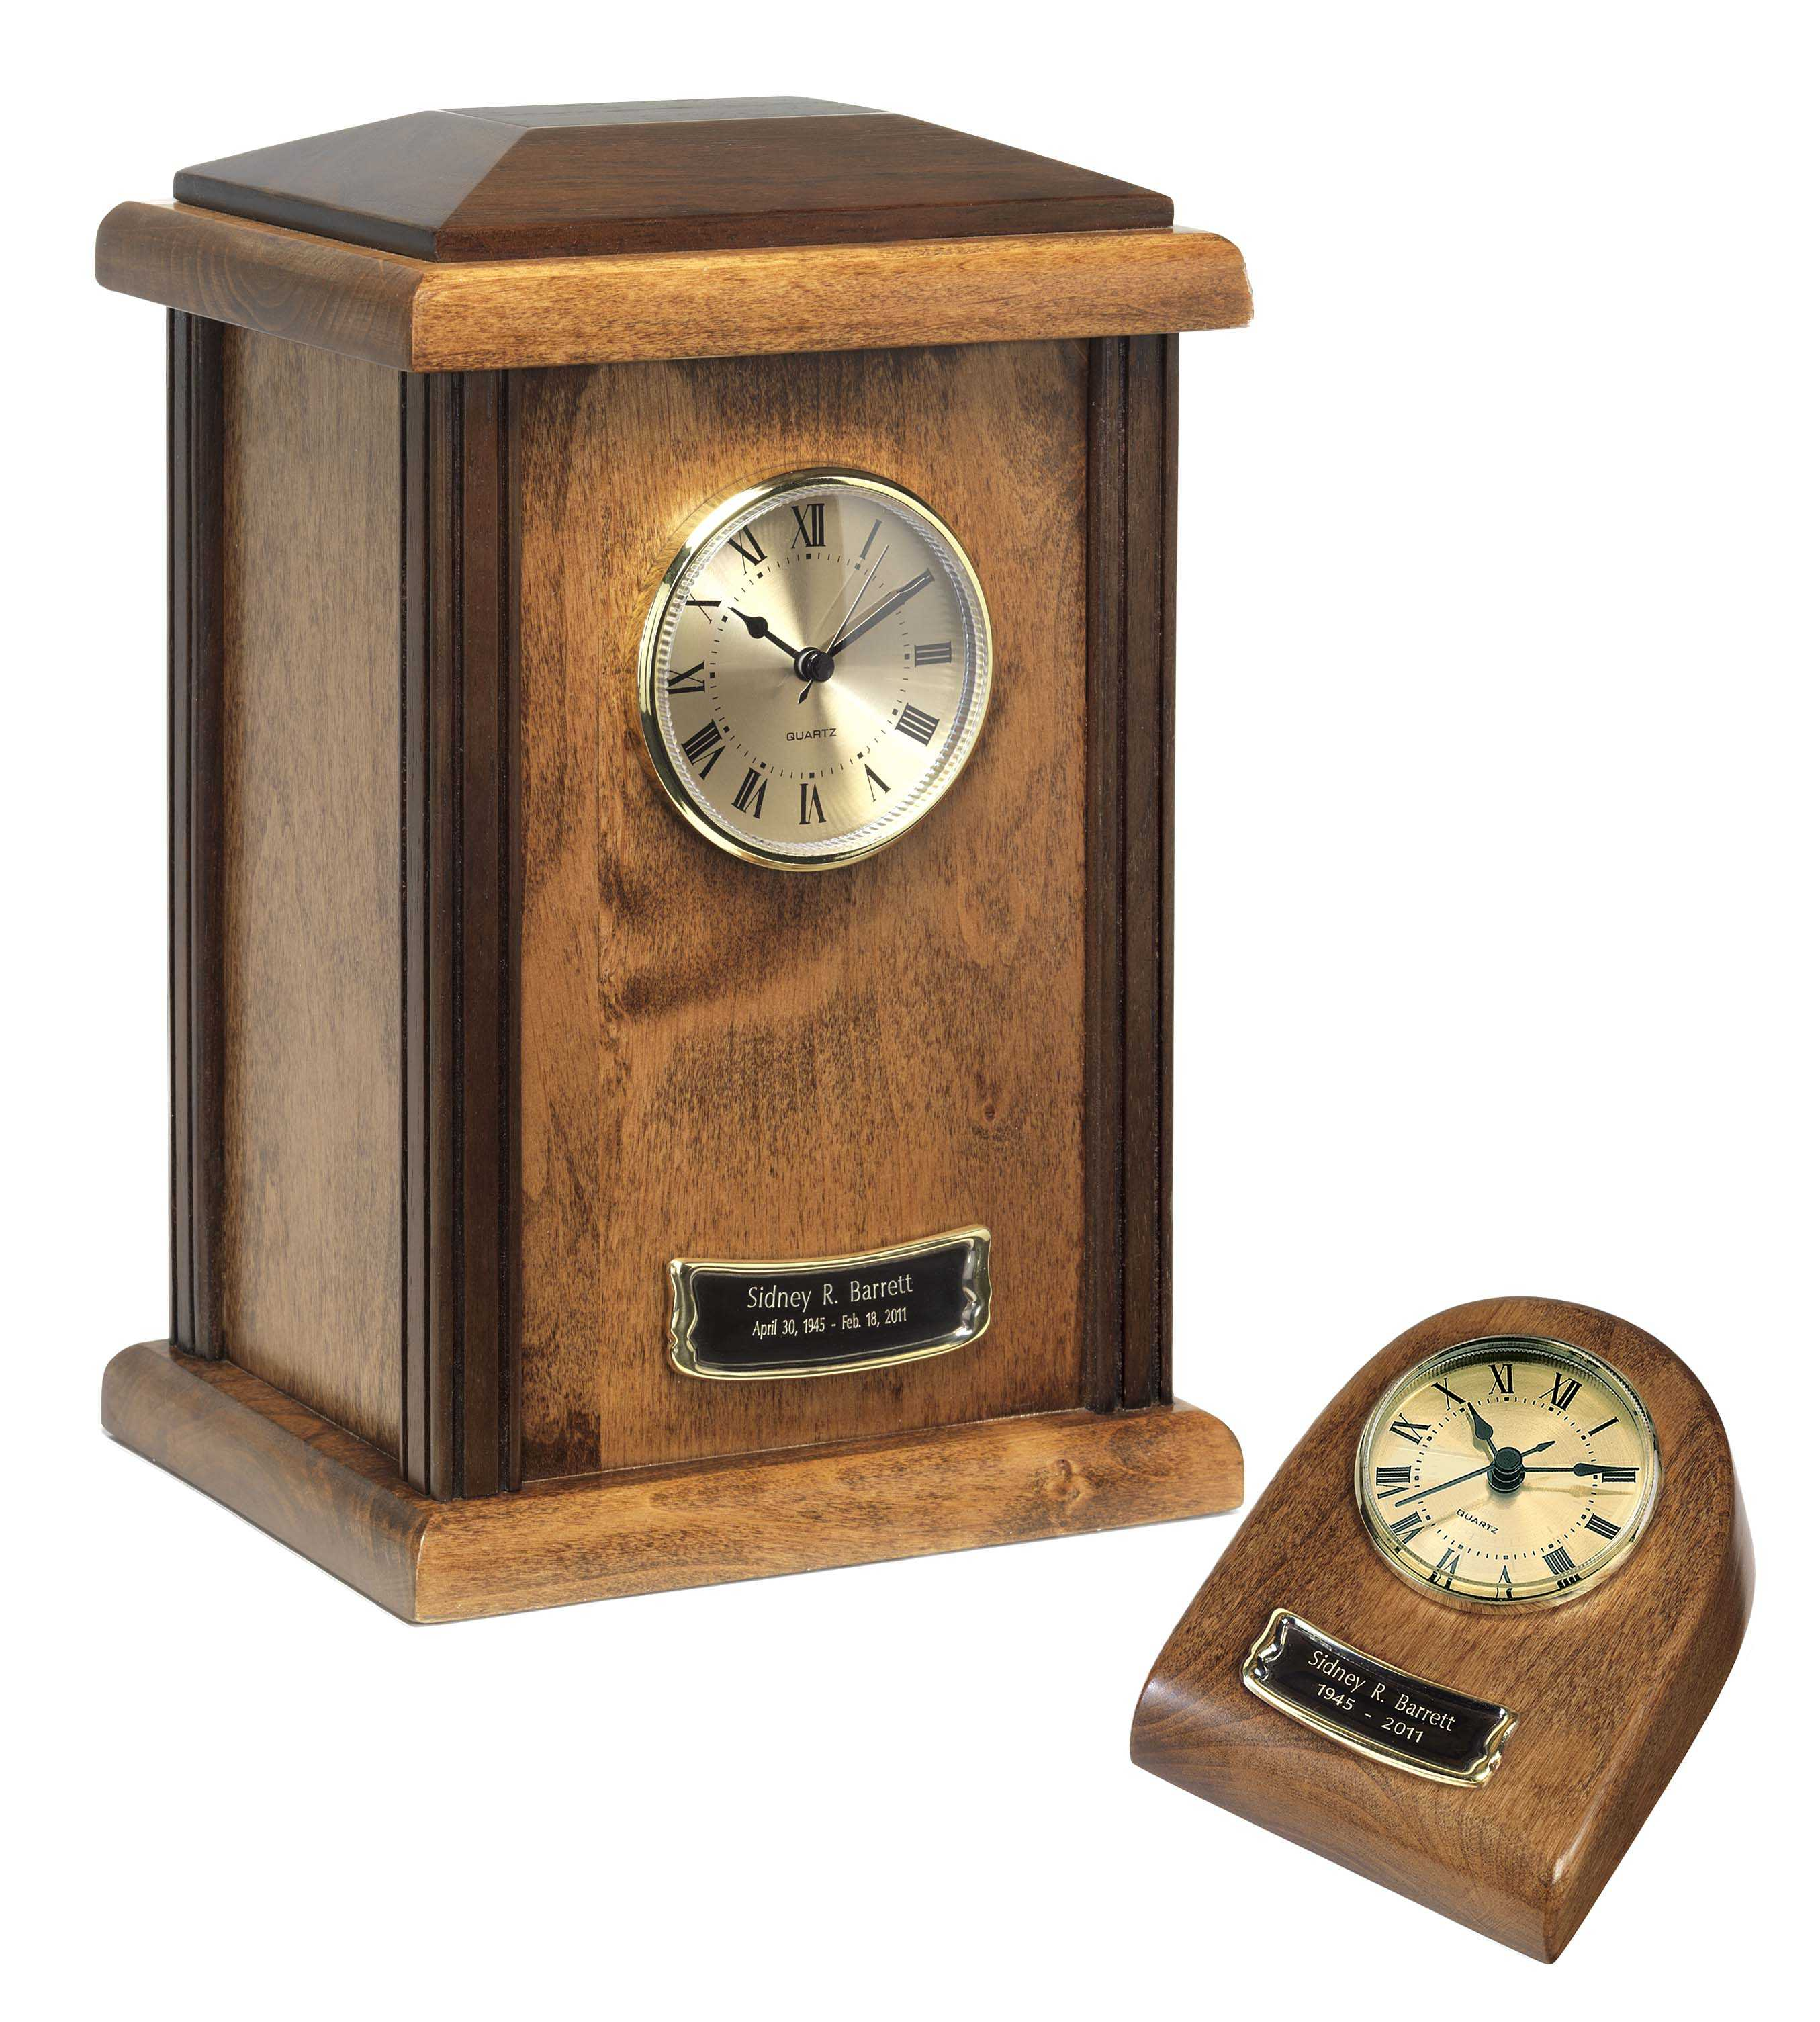 Wood Clock Tower Urn Autumn Finish $65-$150